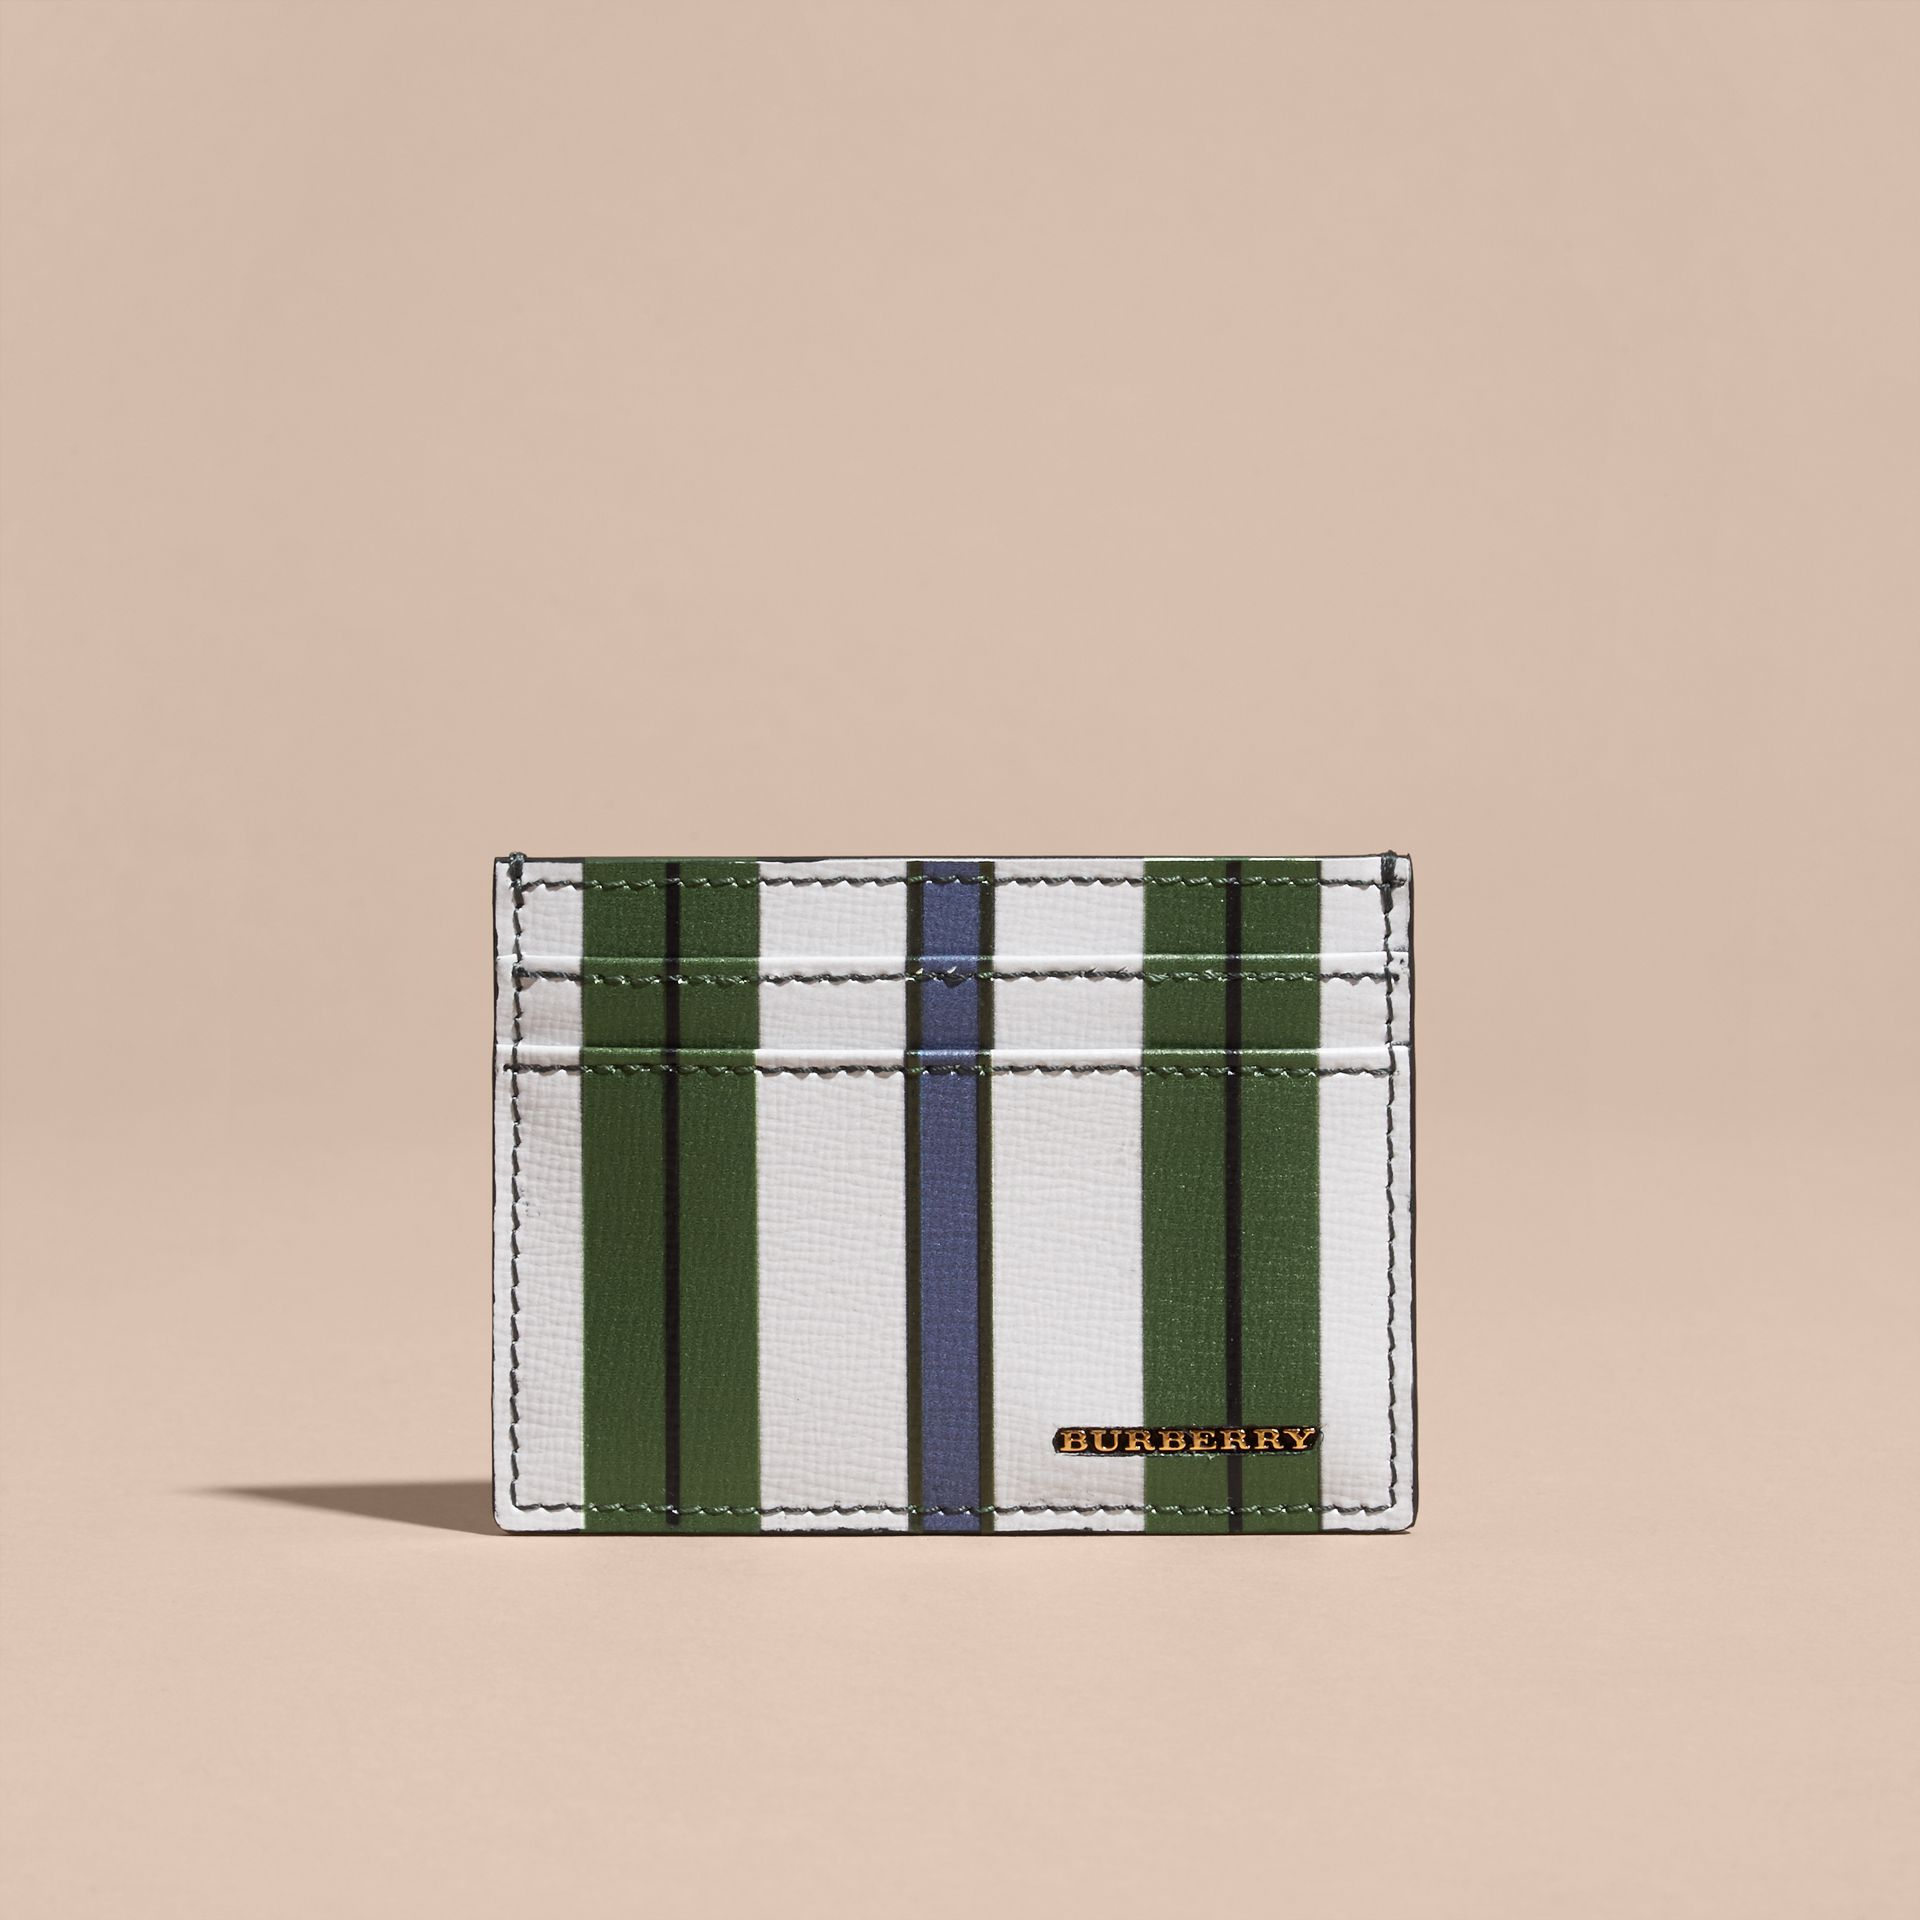 Pyjama Stripe London Leather Card Case Olive Green - gallery image 6